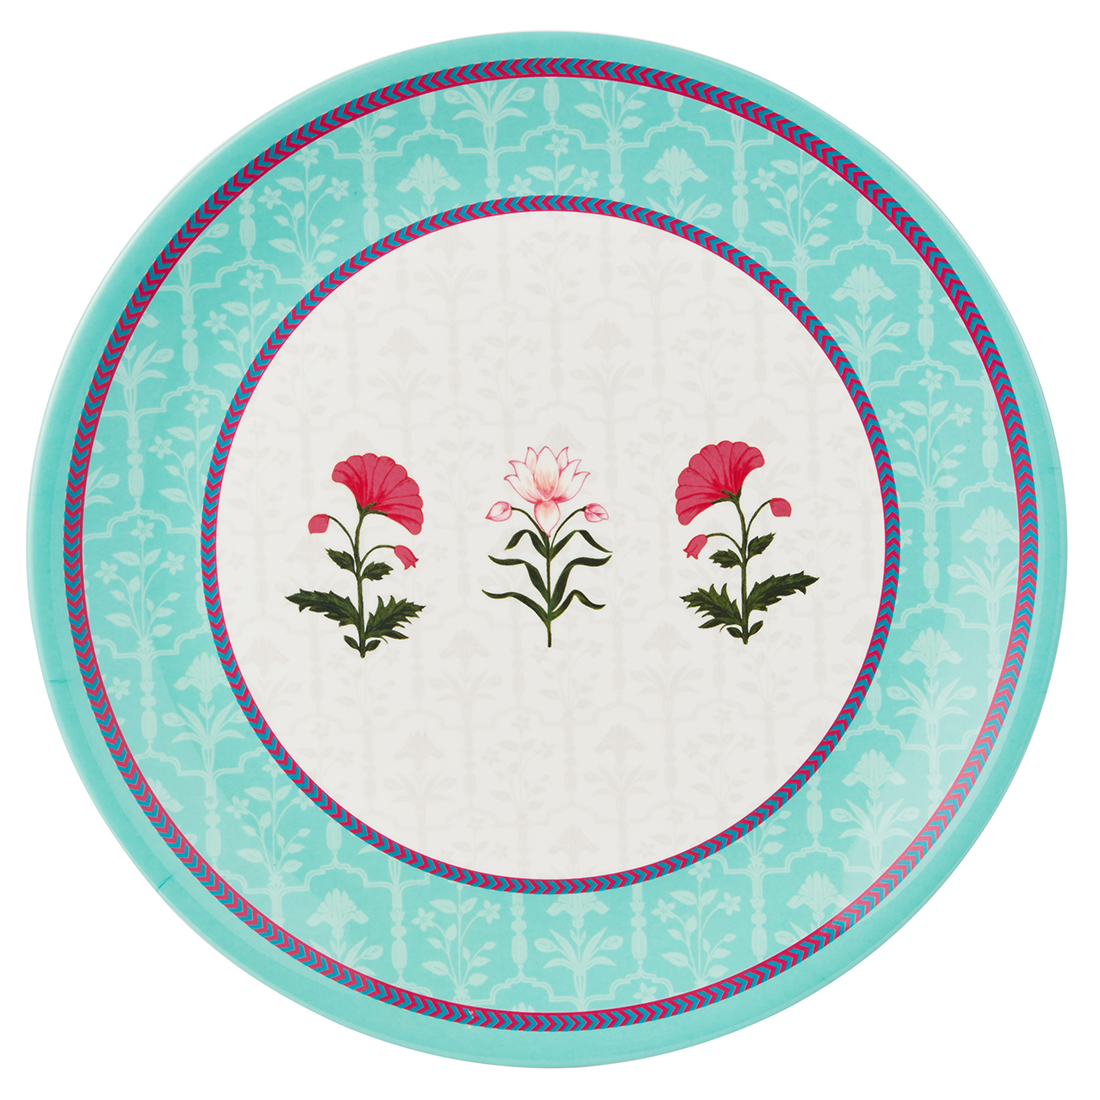 Rambagh Buffet Plate Plates in Multicolour Colour by Living Essence